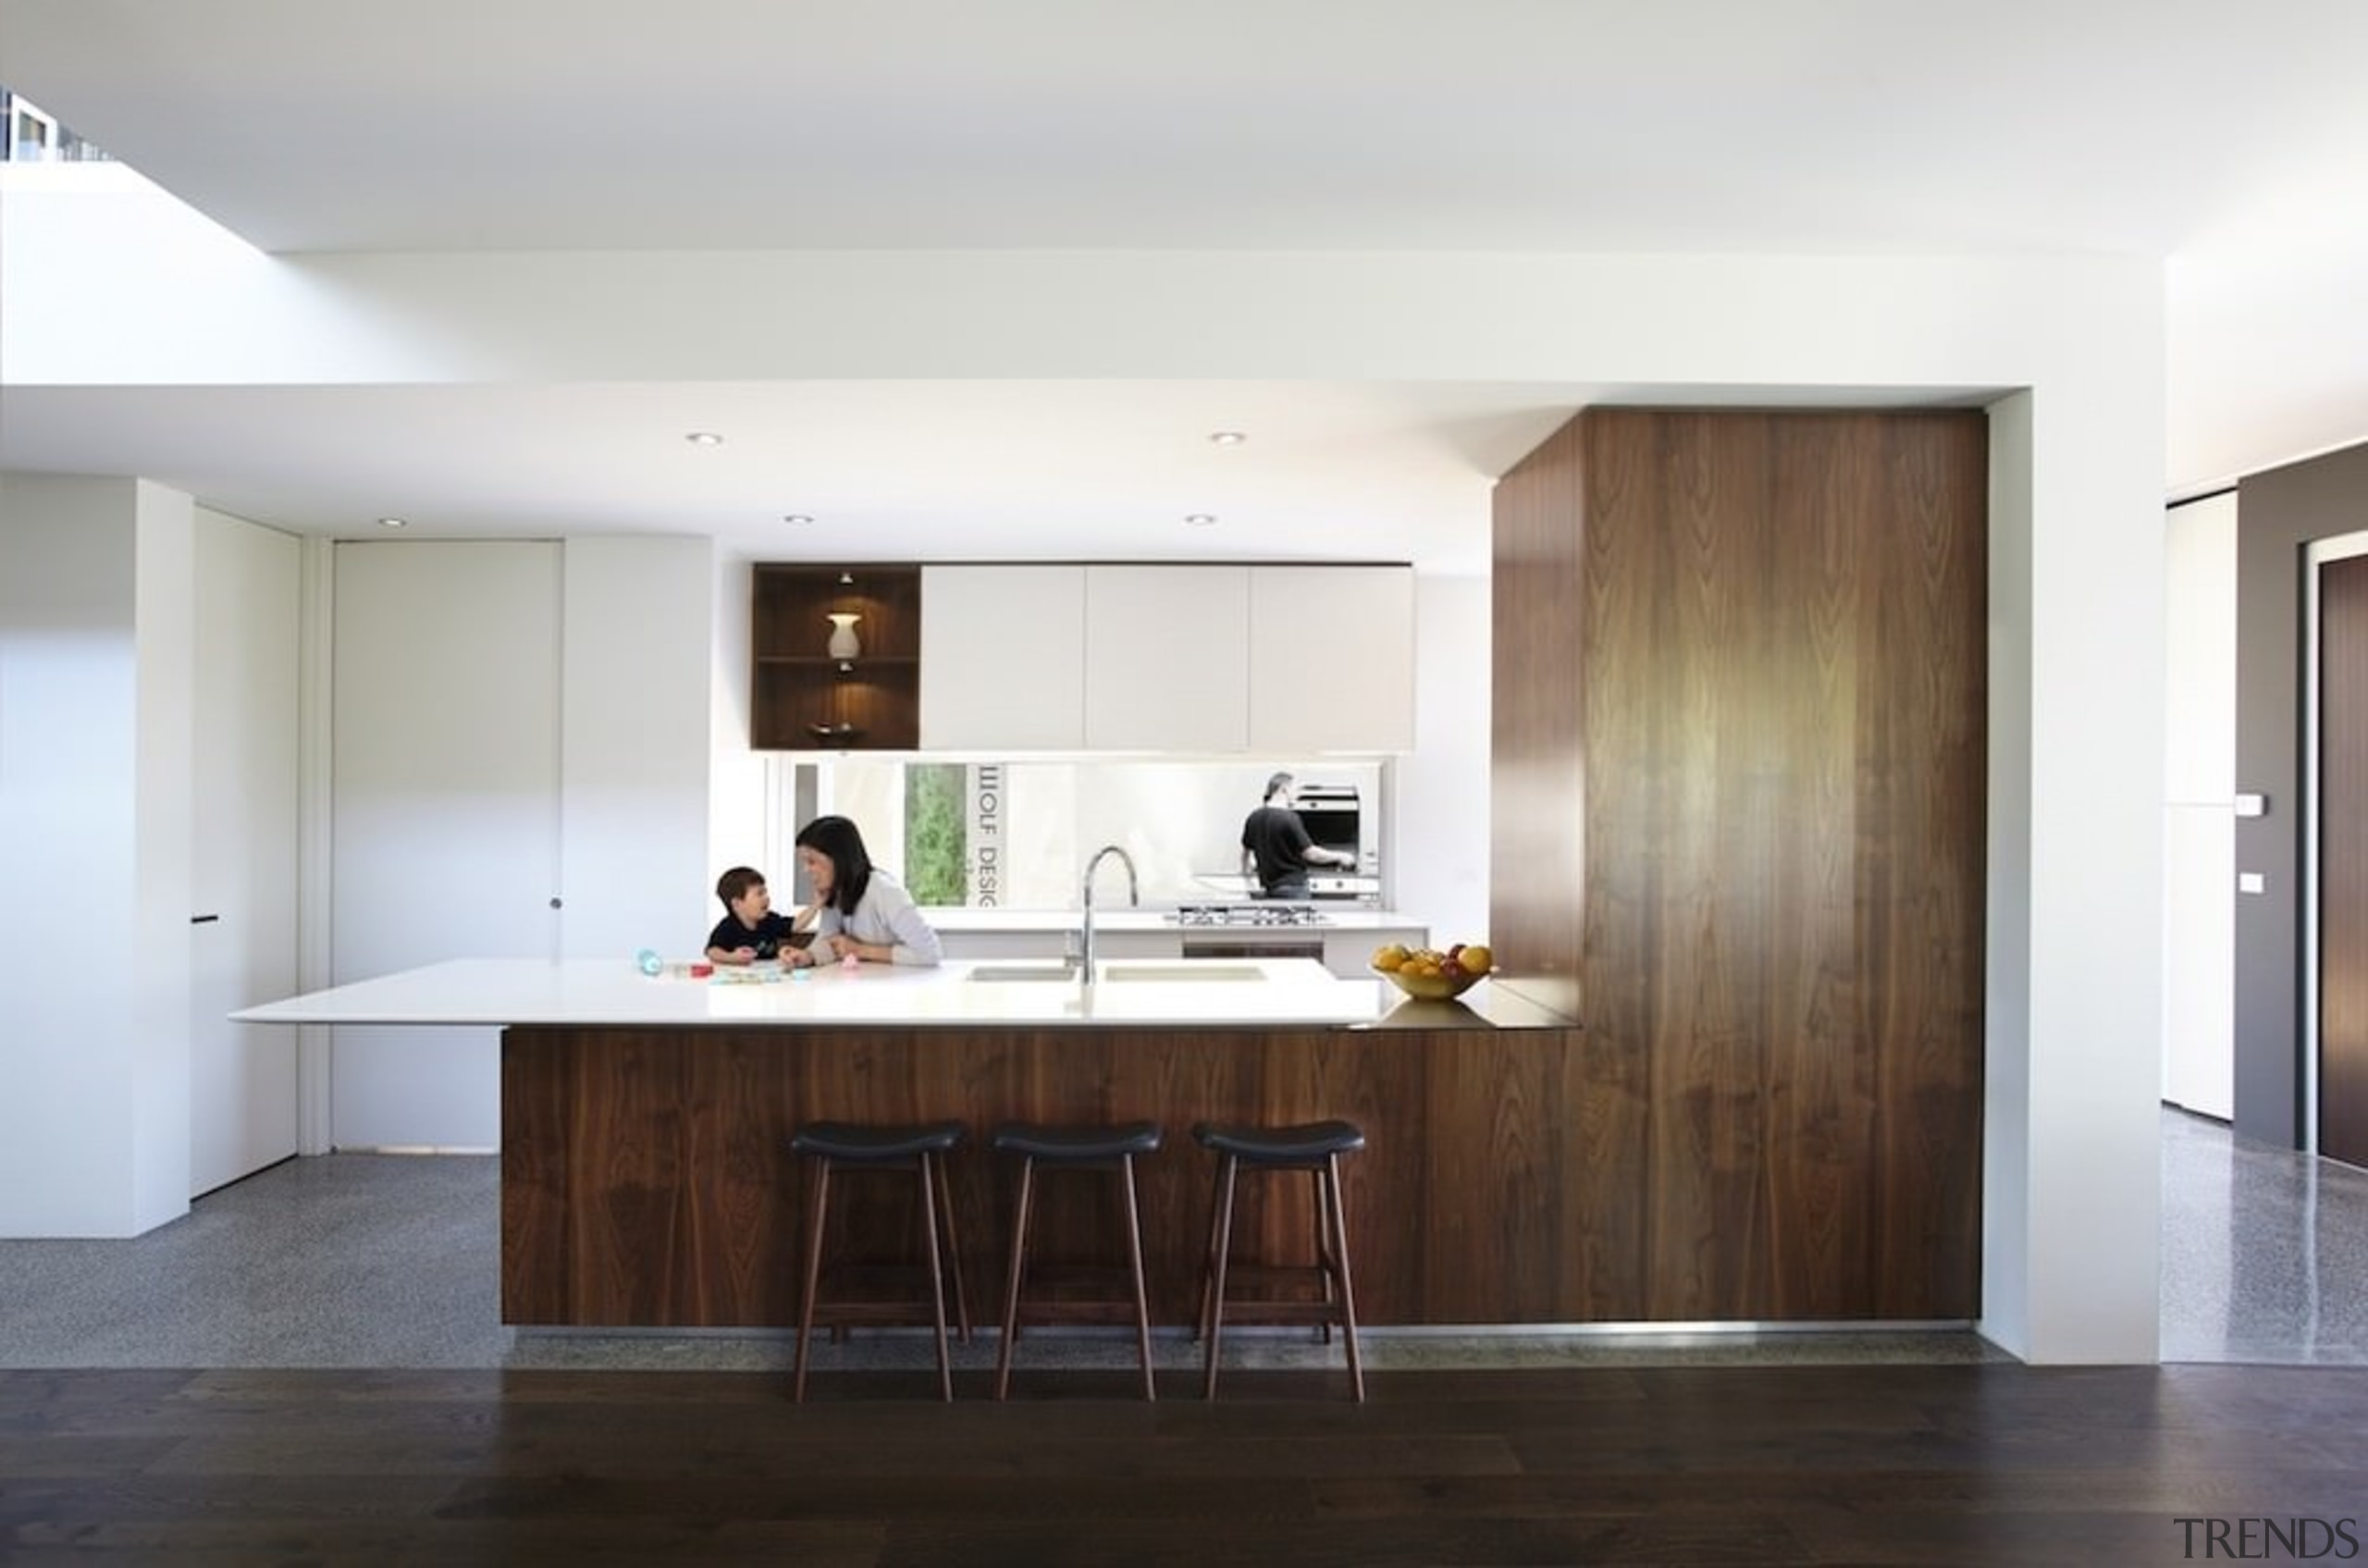 This wood kitchen serves as the perfect contrast cabinetry, countertop, floor, flooring, house, interior design, kitchen, real estate, room, wood flooring, white